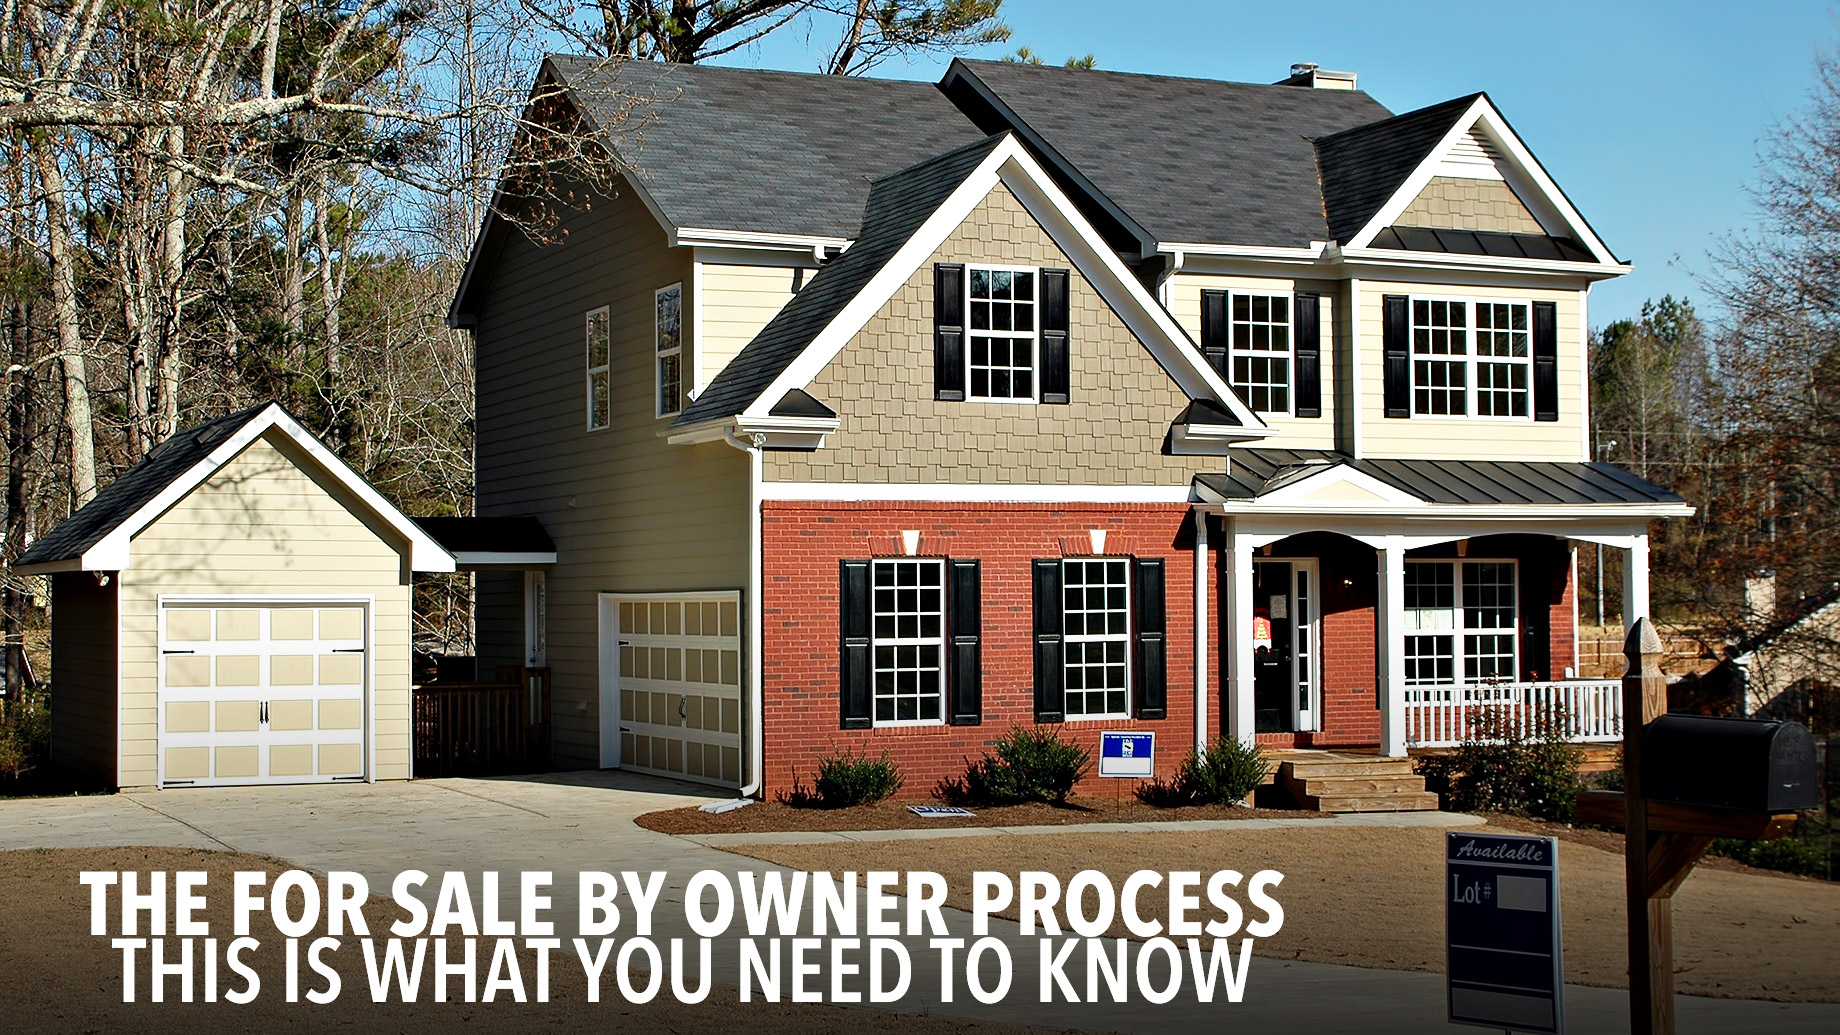 The For Sale by Owner Process - This Is What You Need to Know